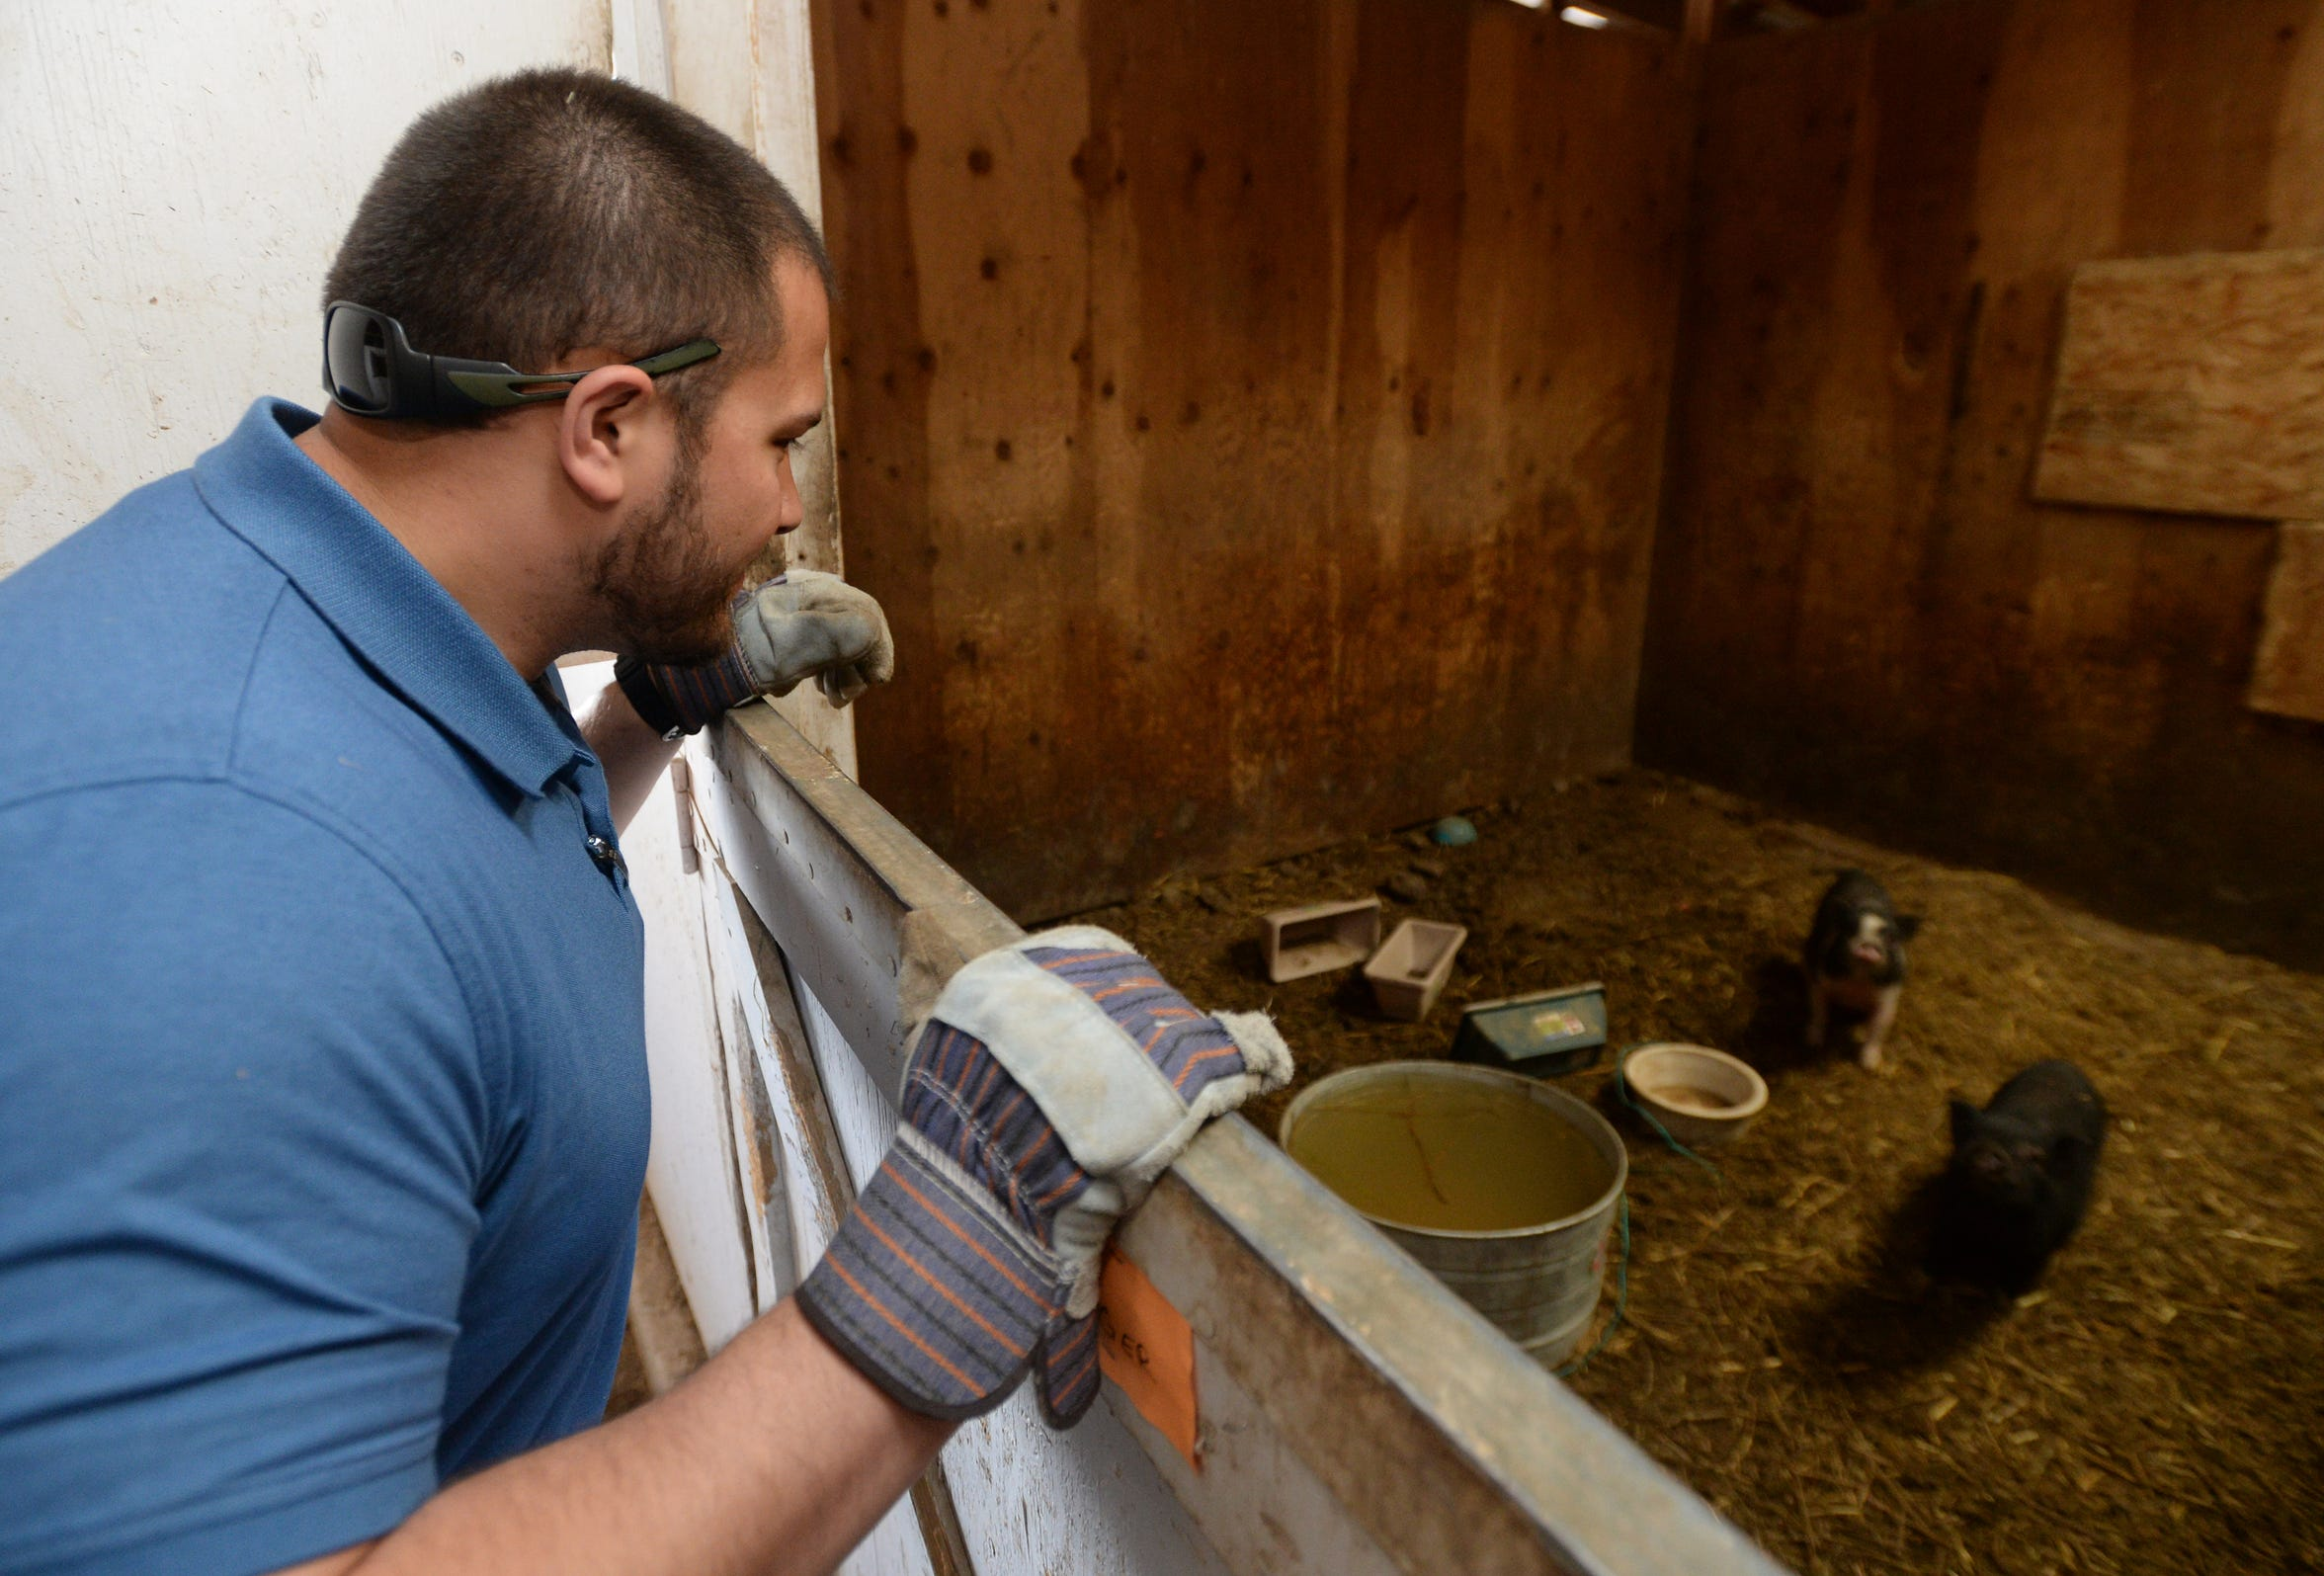 Detective Mike Krause of the Cascade County Sheriff's Office is helping care for the 176 animals seized from Pamela Jo Polejewski.  Polejewski has been charged with animal cruelty after animals were found in poor living conditions on Polejewski's property west of Great Falls.